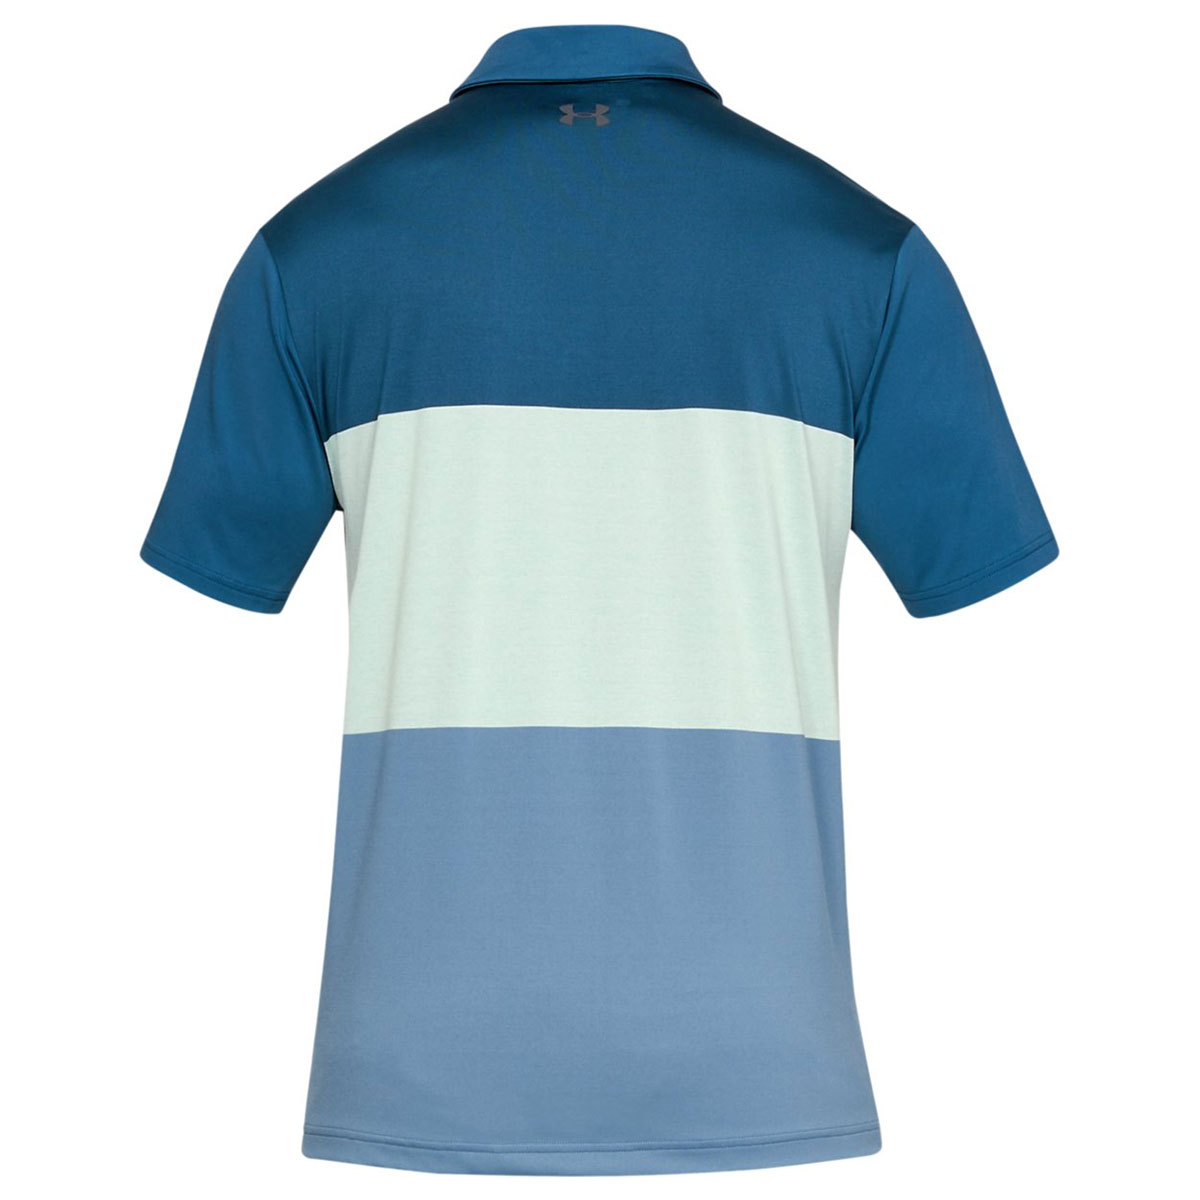 Under-Armour-Mens-2019-Playoff-Polo-2-0-Breathable-Light-Stretch-Polo-Shirt thumbnail 97